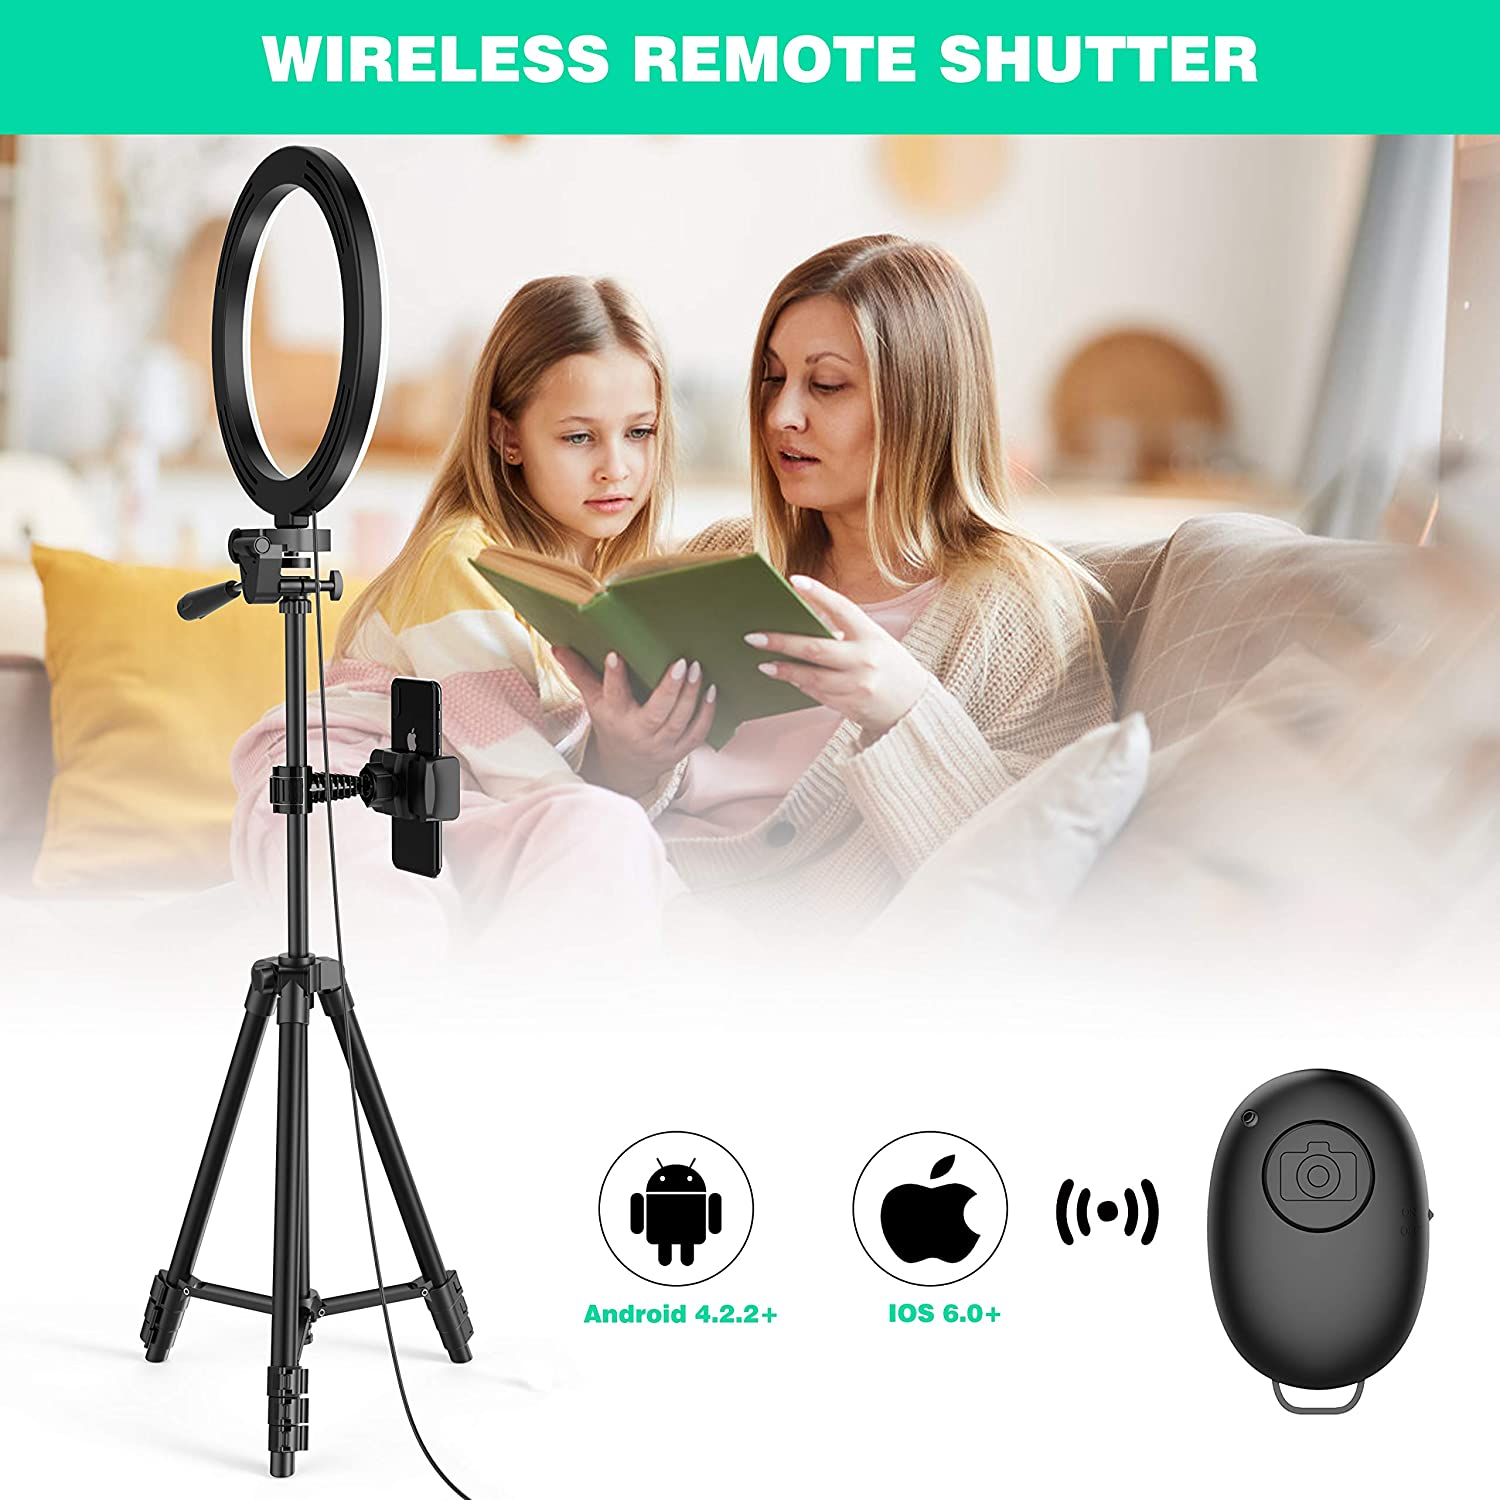 Desktop LED Camera Beauty Ringlight for YouTube Video Recording Compatible with iPhone 11 Xs Max XR Android 2020 Version 10 Ring Light with 50 Tripod Stand and Phone Holder for Live Stream//Makeup